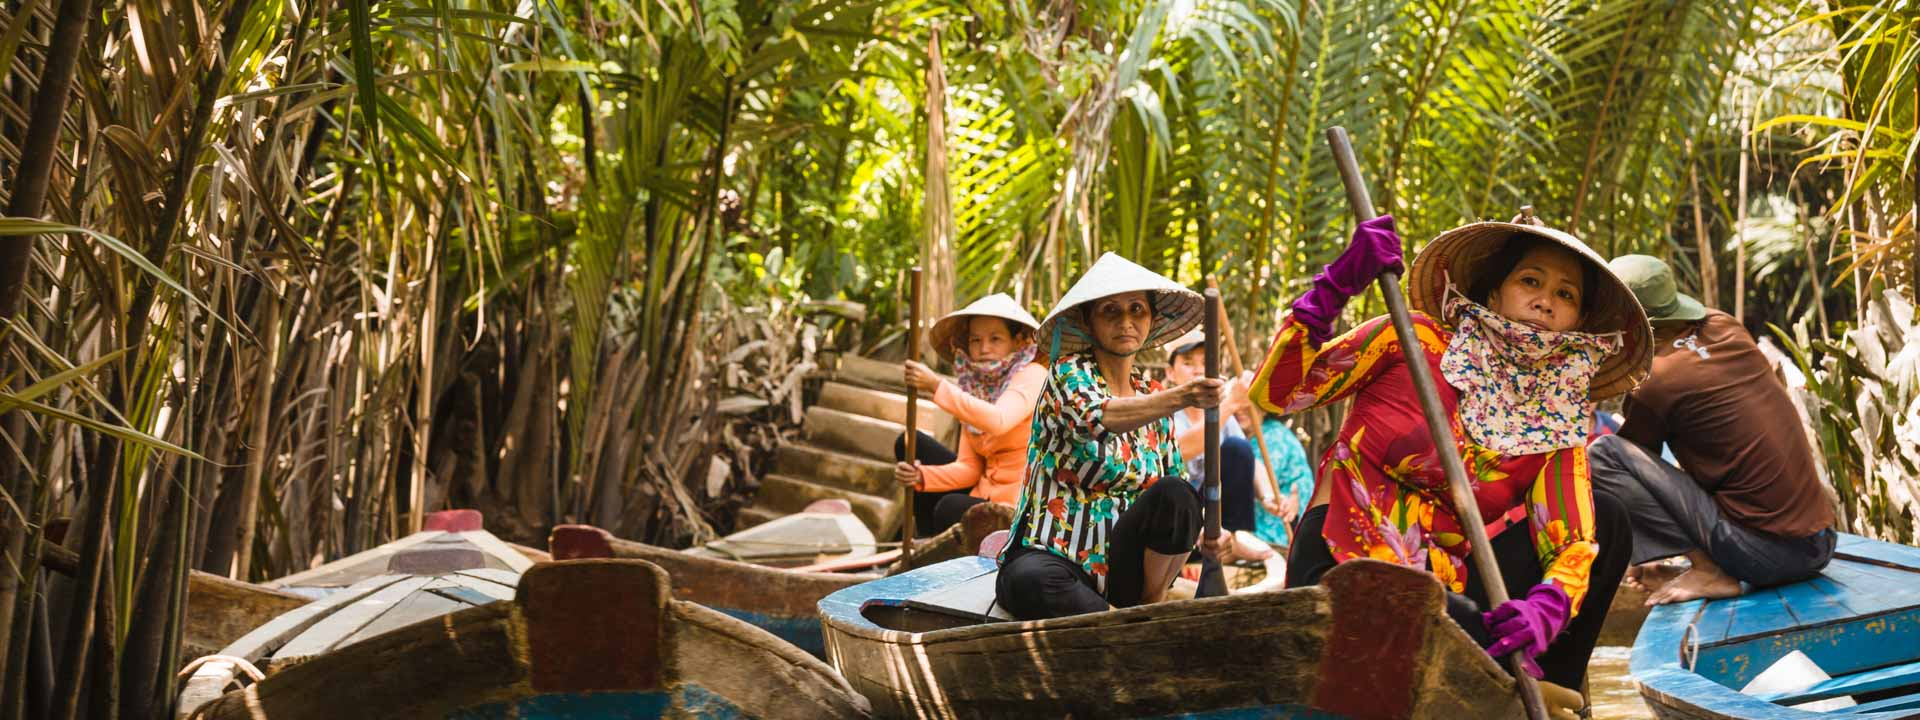 Best of the Best Vietnam Holiday 18 days